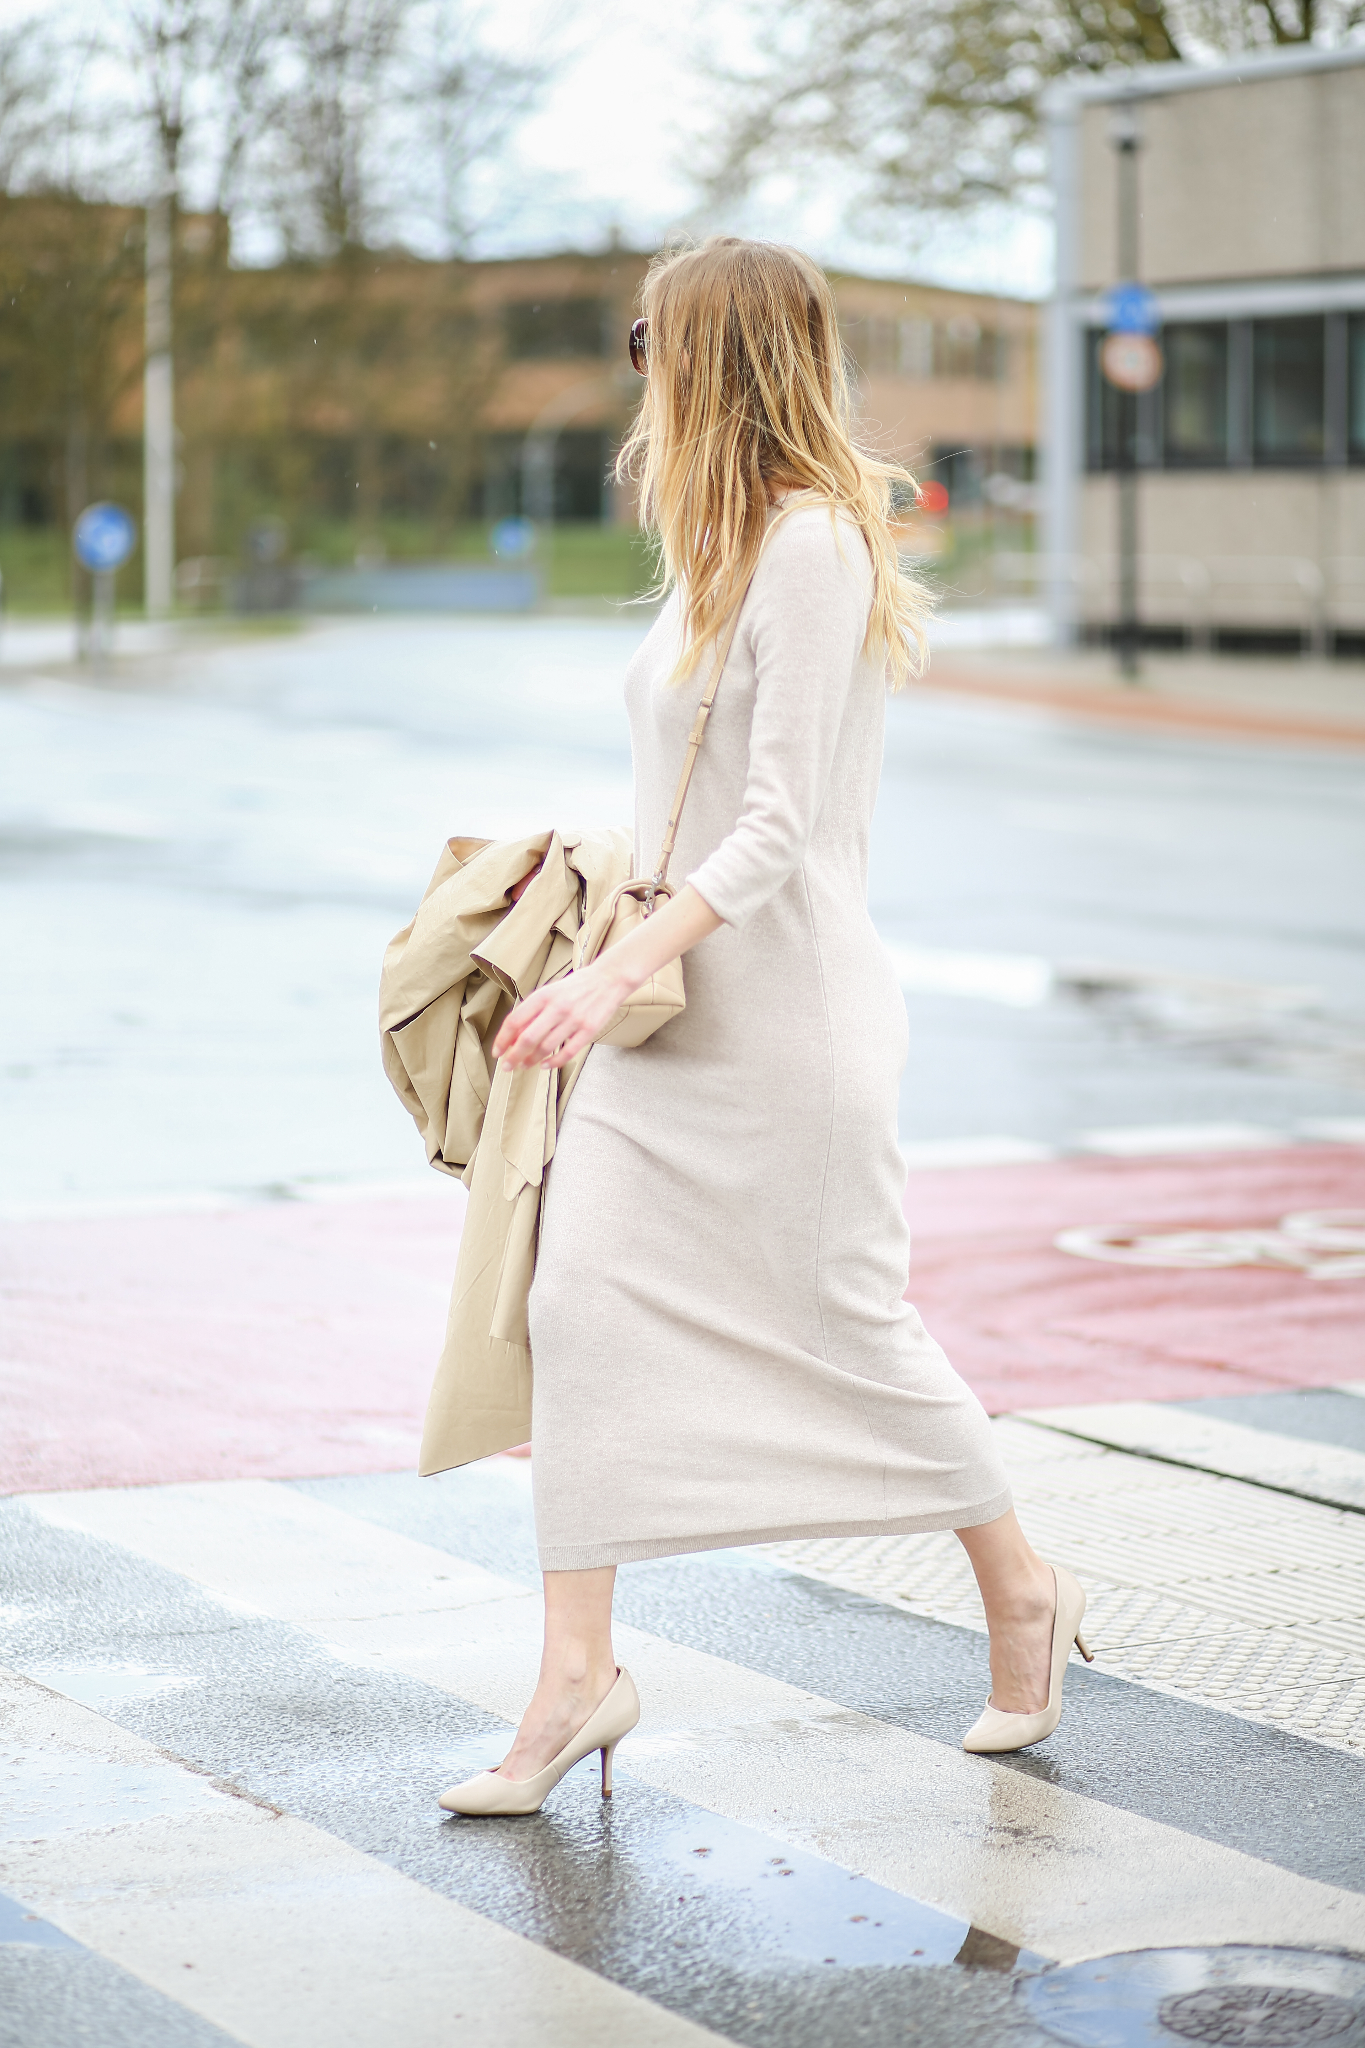 MOD-by-Monique-Fashion-Looks-The-cashmere-dress-4